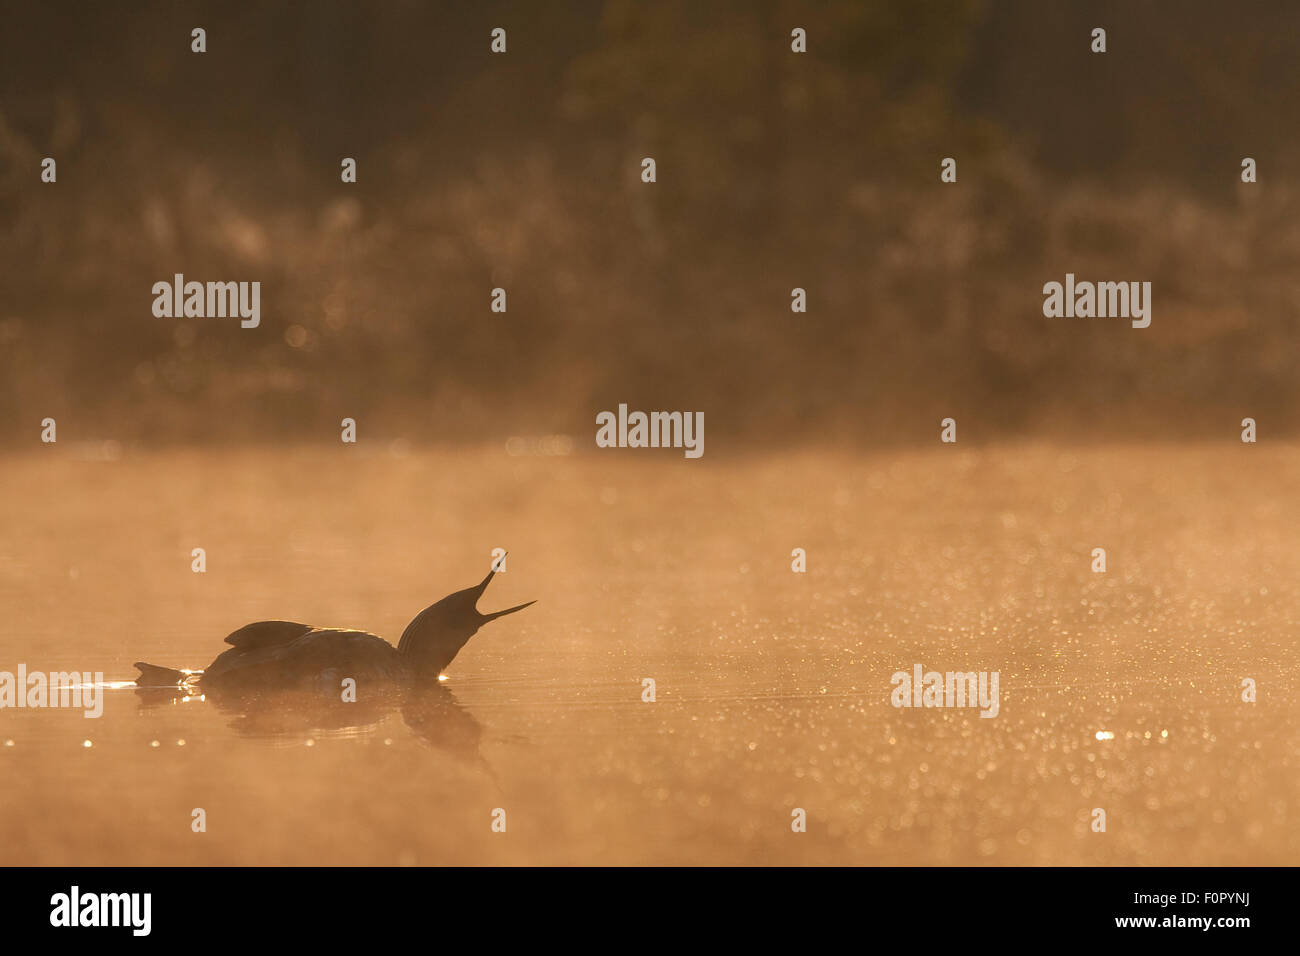 Red throated diver (Gavia stellata) calling on water at dawn in mist, Bergslagen, Sweden, April 2009 - Stock Image